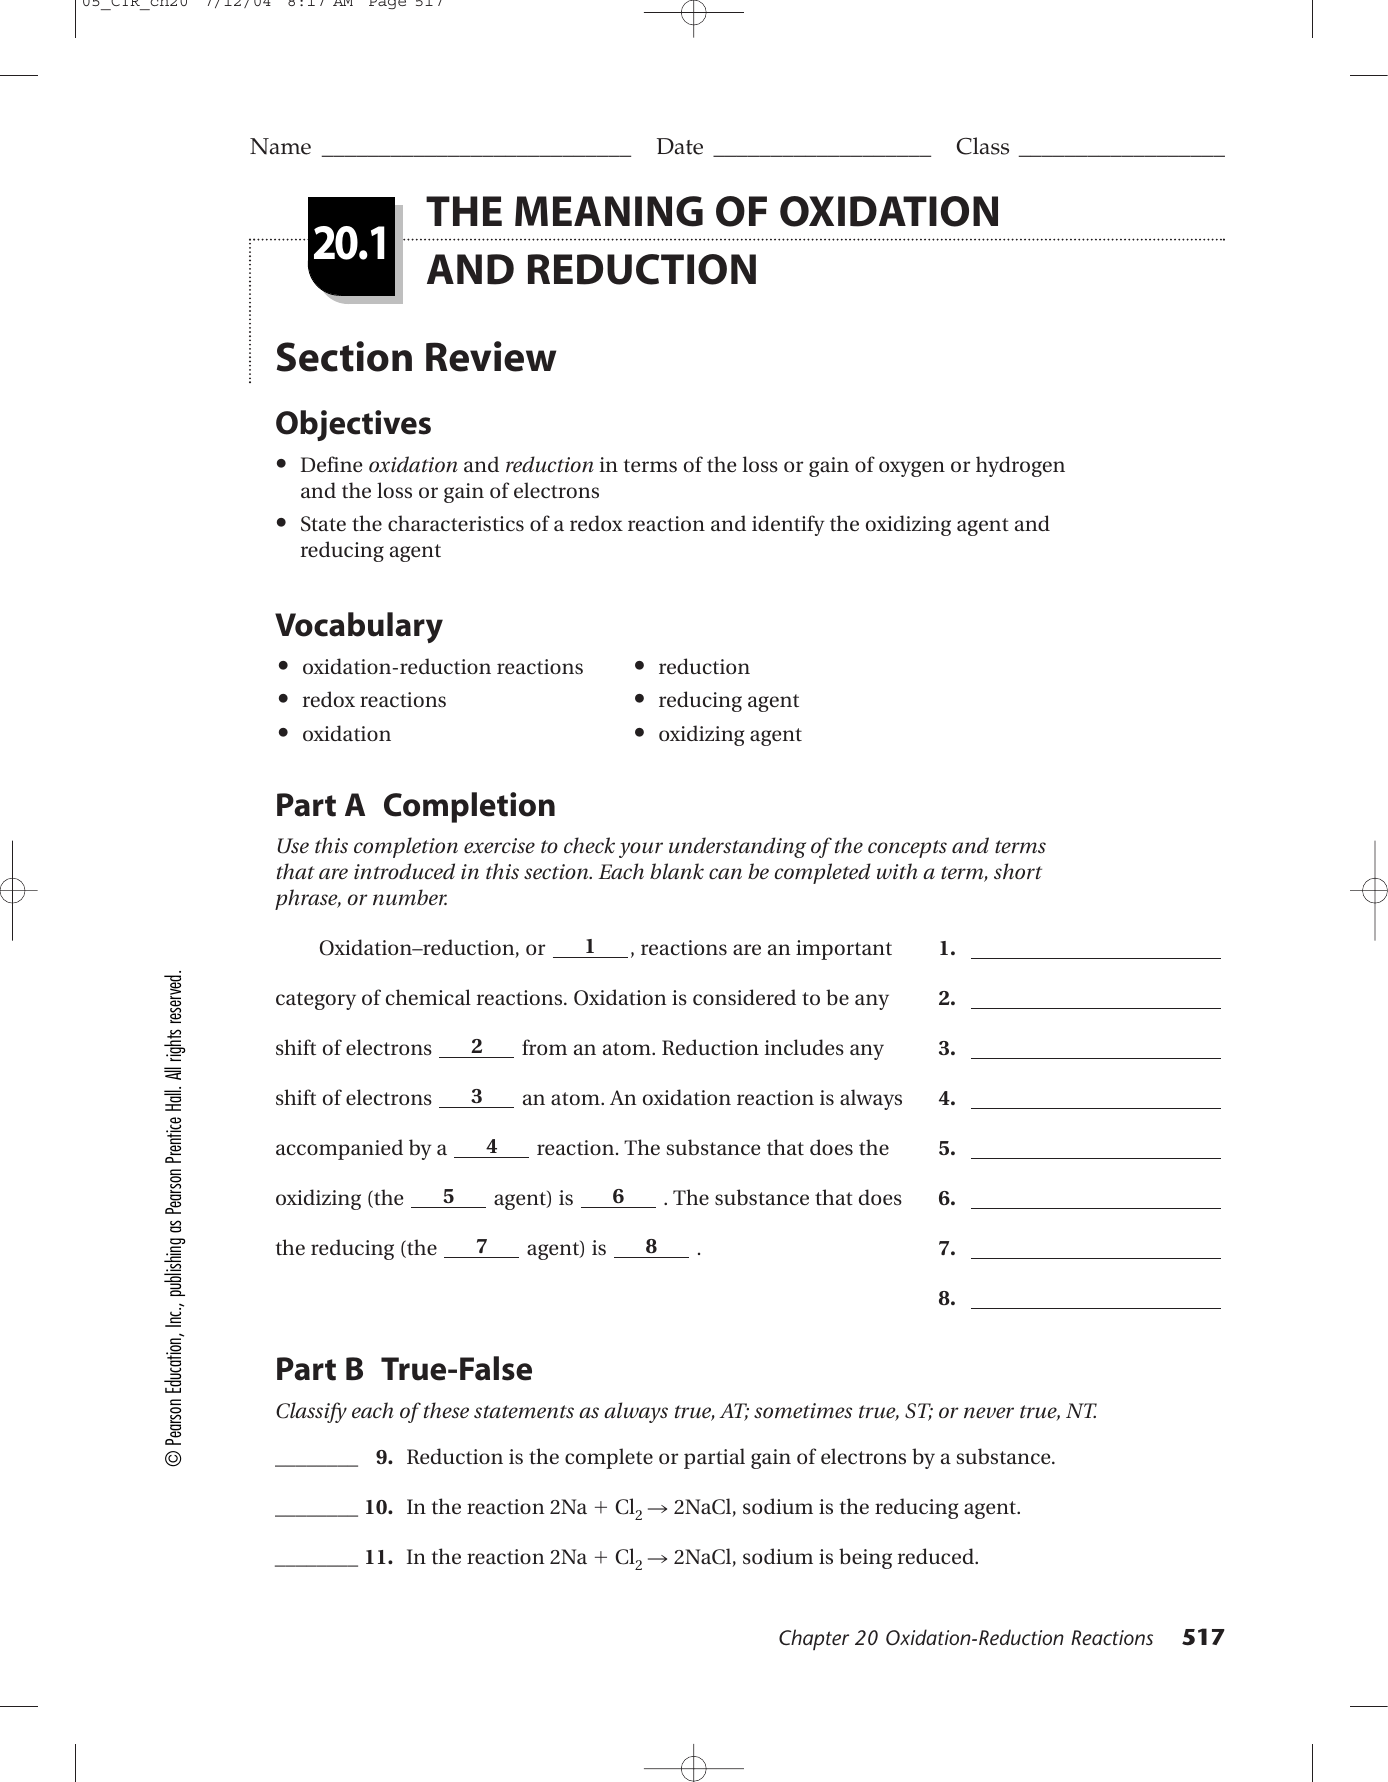 worksheet Electrochemistry Worksheet part a completion